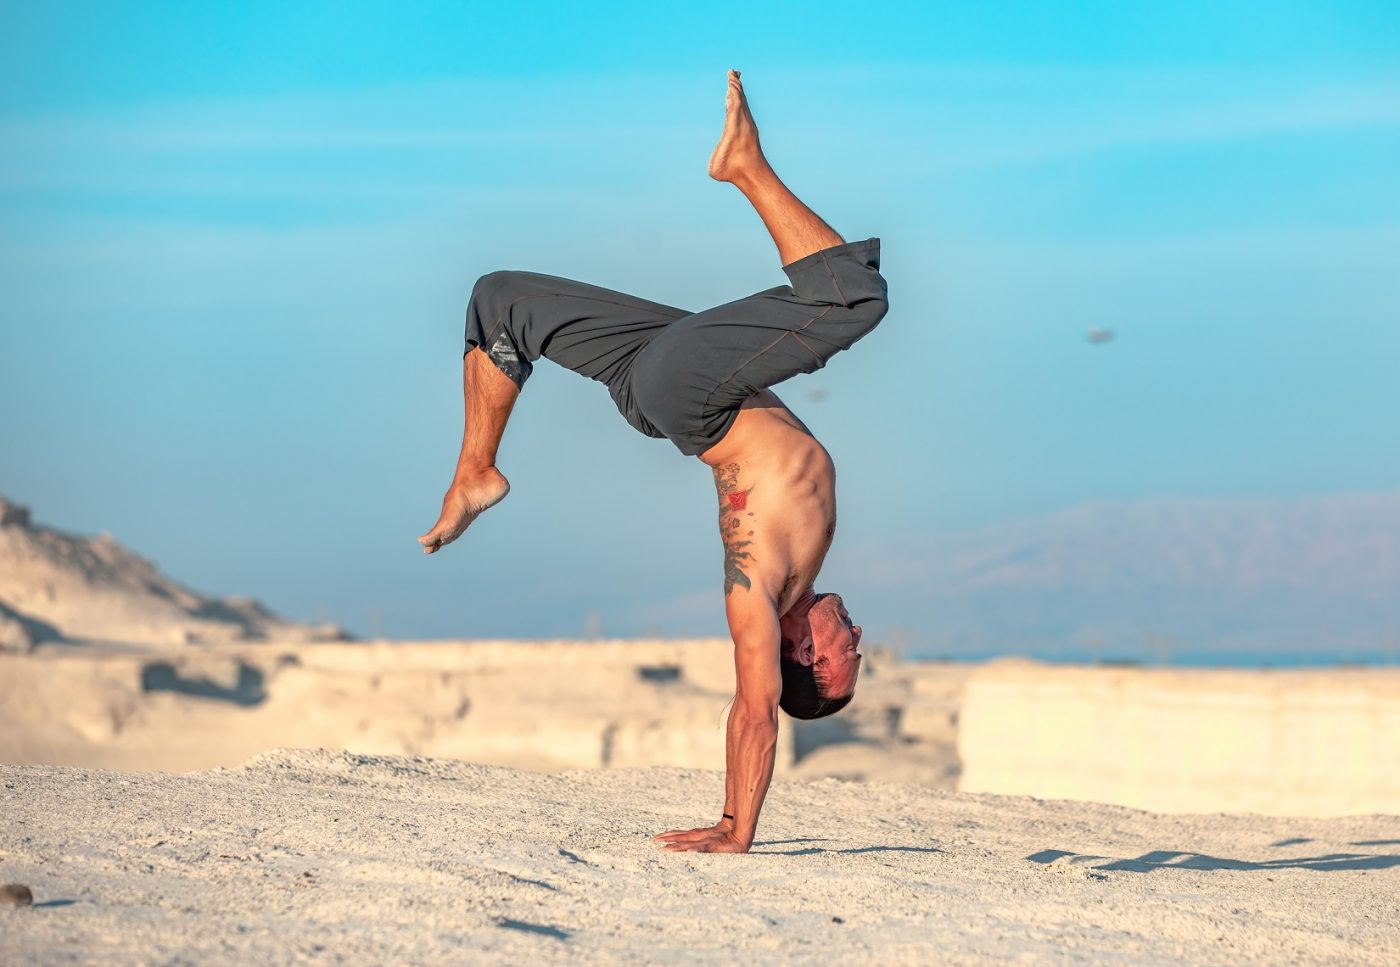 Eddy Toyonaga doing a hollowback handstand in the desert